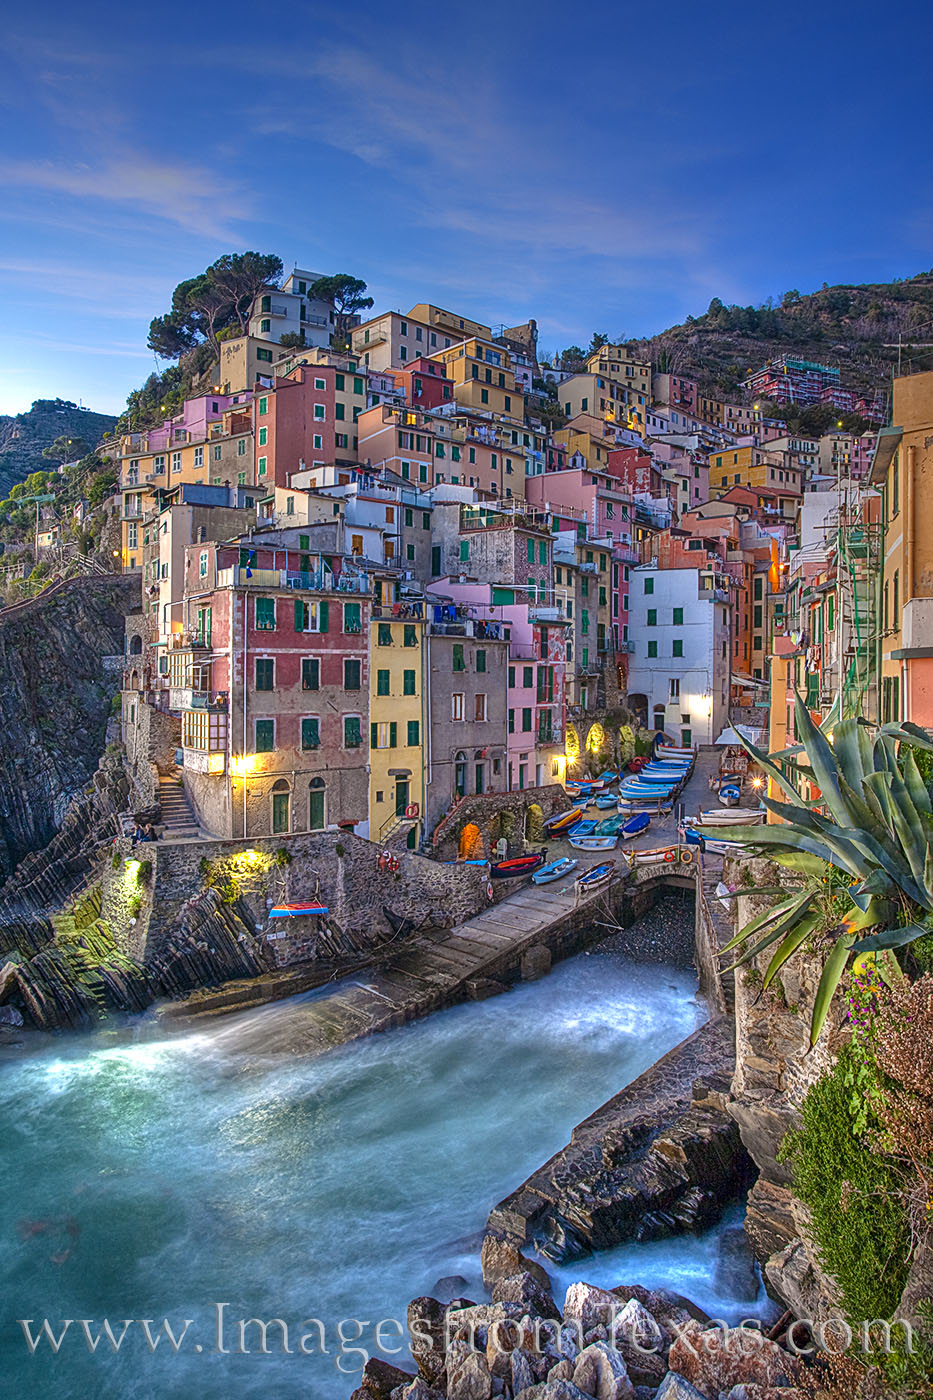 riomaggiore, cinque terre, ligurian sea, italy, italian coast, italian riveria, 5 lands, ocean, water, evening, photo